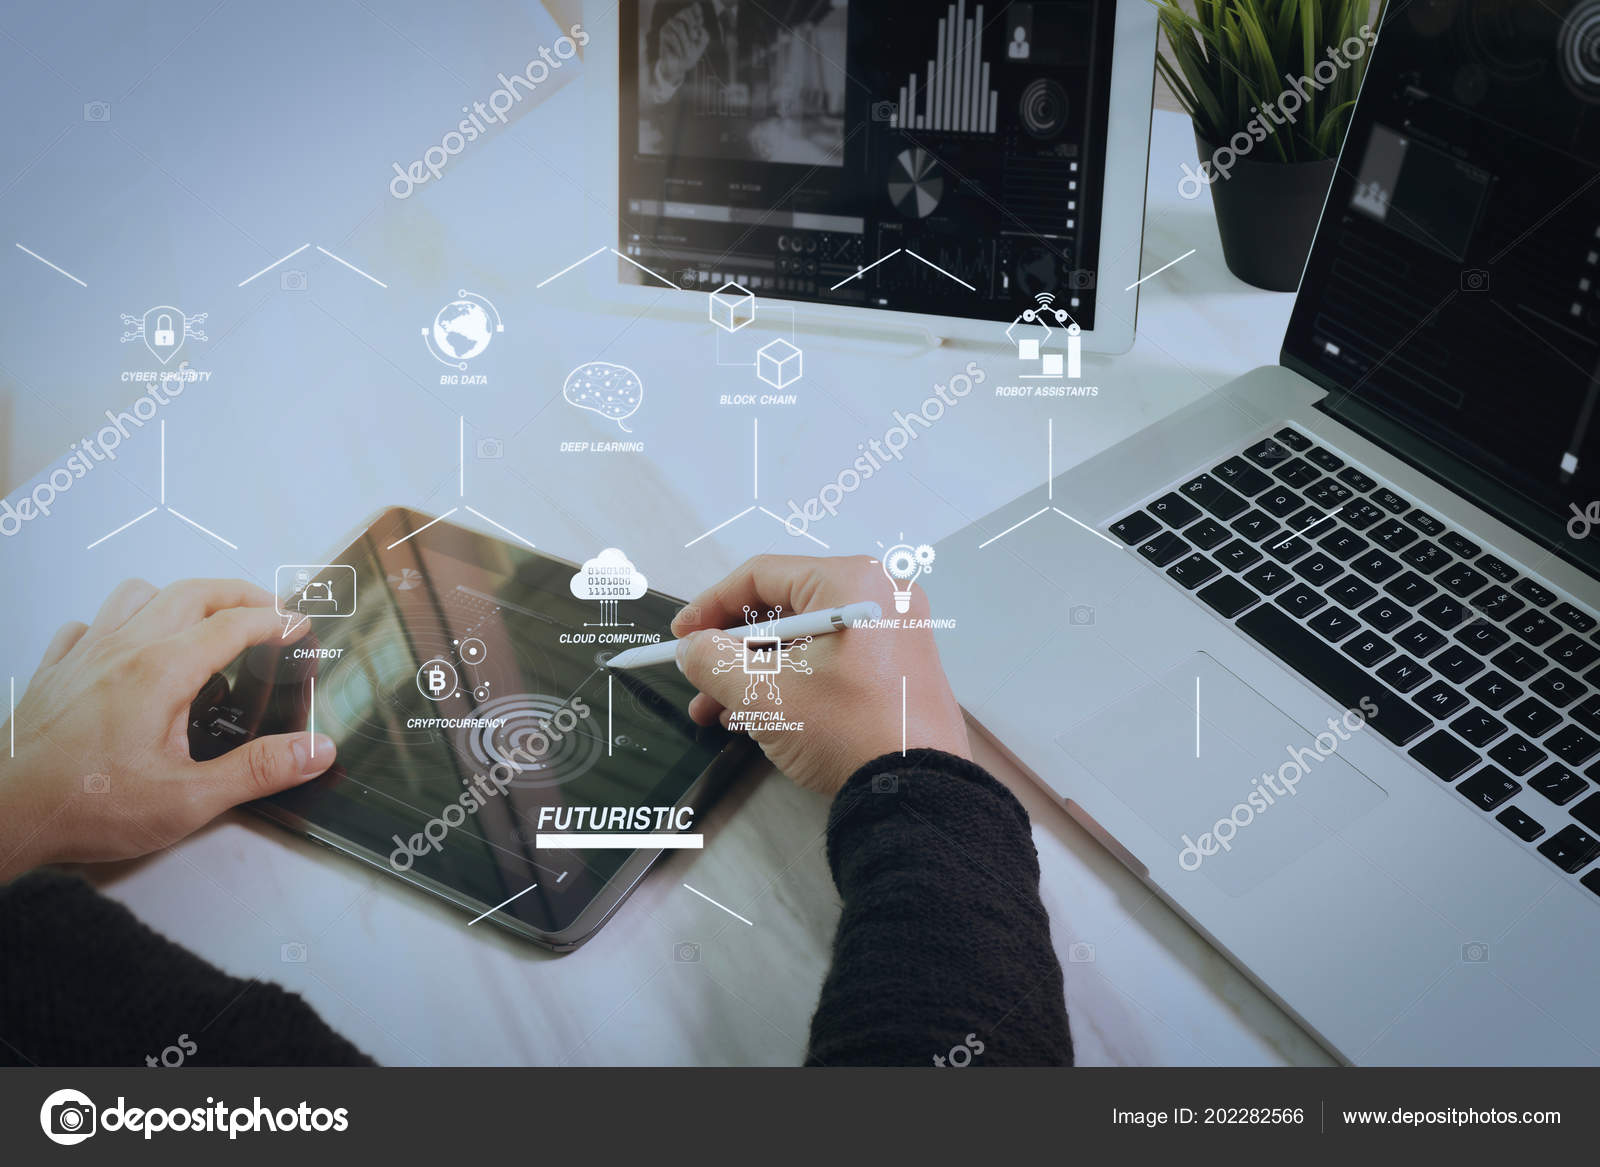 Futuristic Industry Business Virtual Diagram Robot Assistant Cloud Computer Hardware Block Jpg Big Data Stock Photo